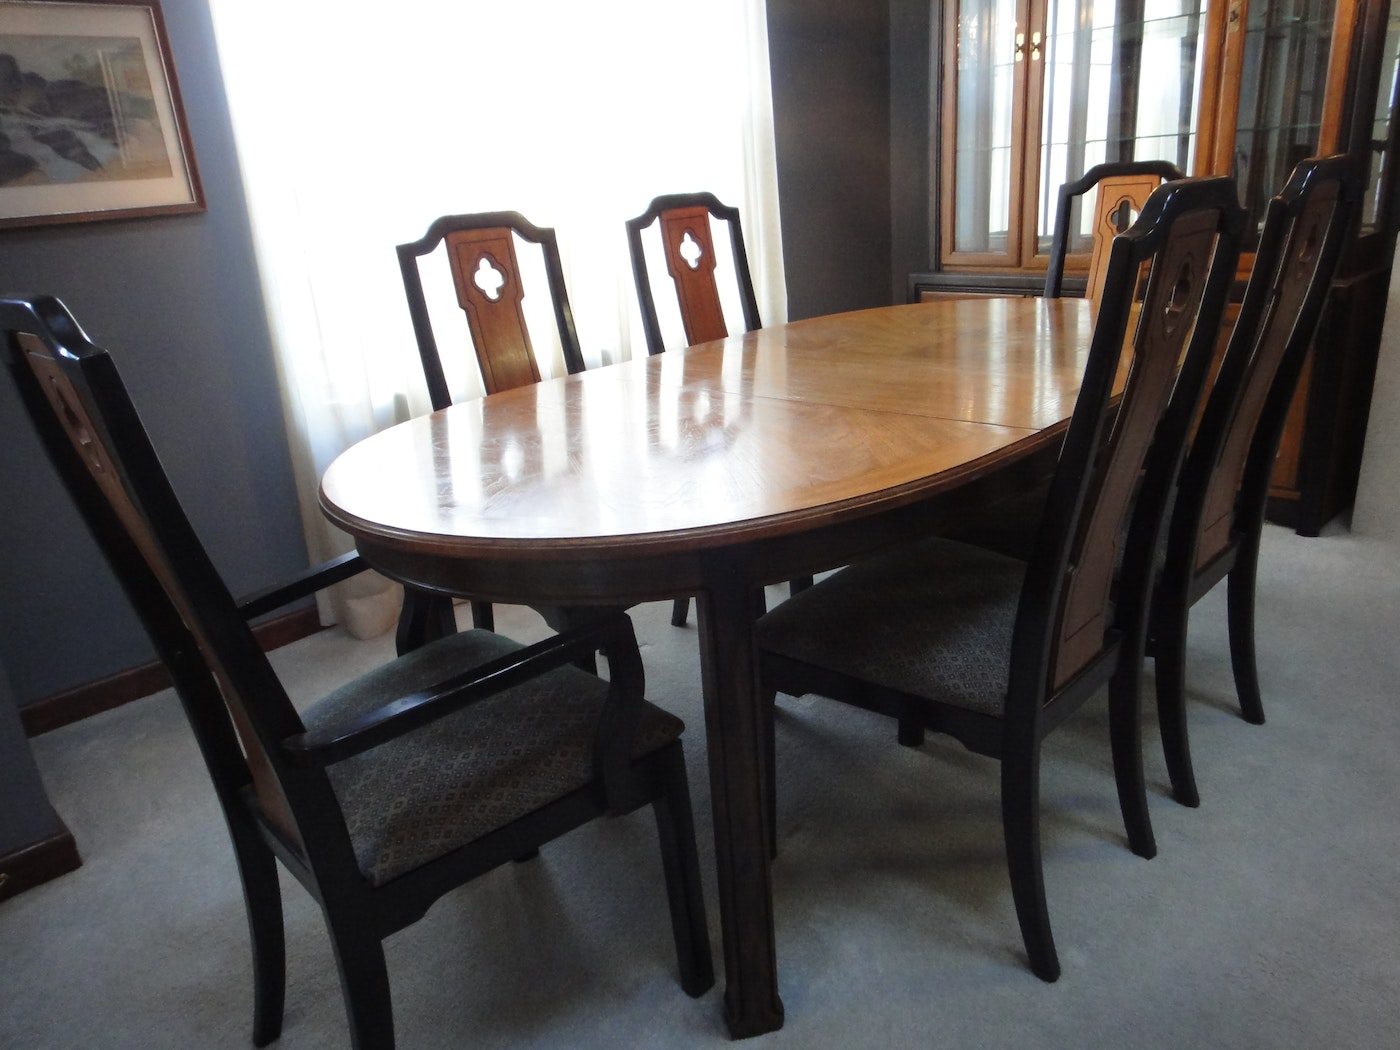 mid century thomasville dining room table 6 chairs ebth. Black Bedroom Furniture Sets. Home Design Ideas